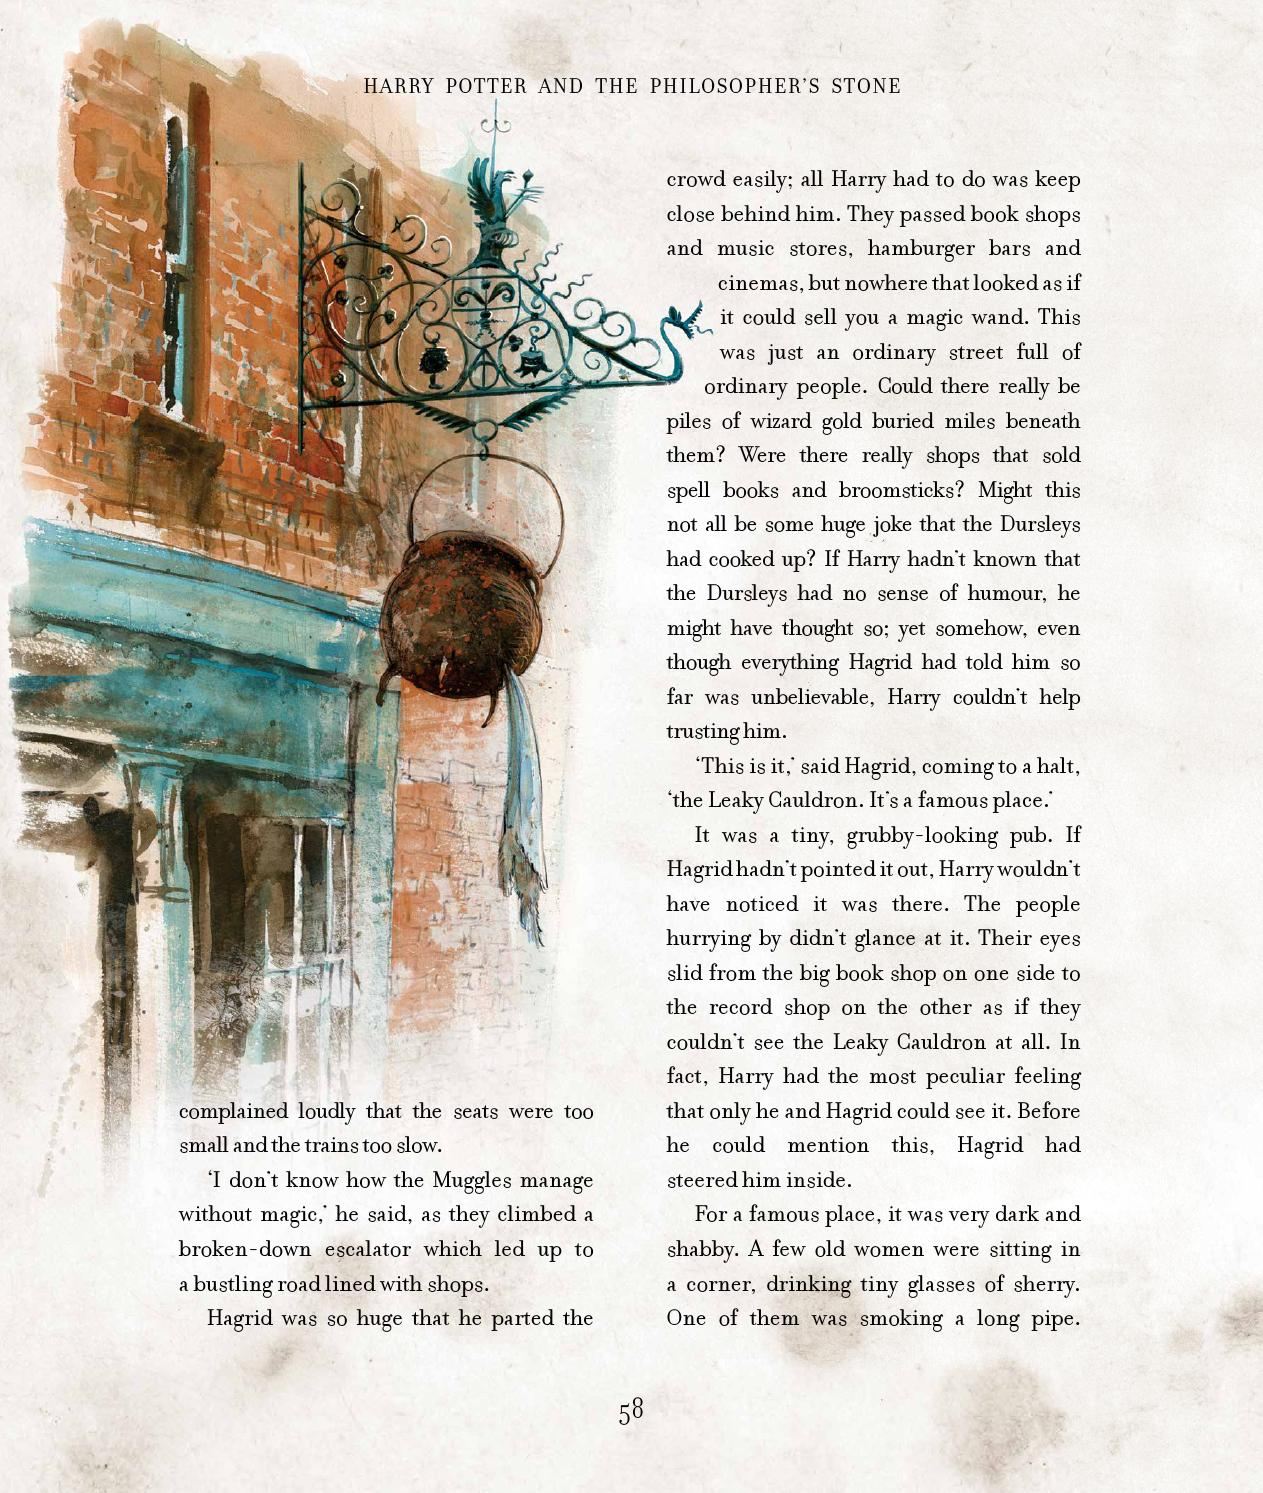 Harry Potter Book Extract : Harry potter and the philosopher s stone by j k rowling